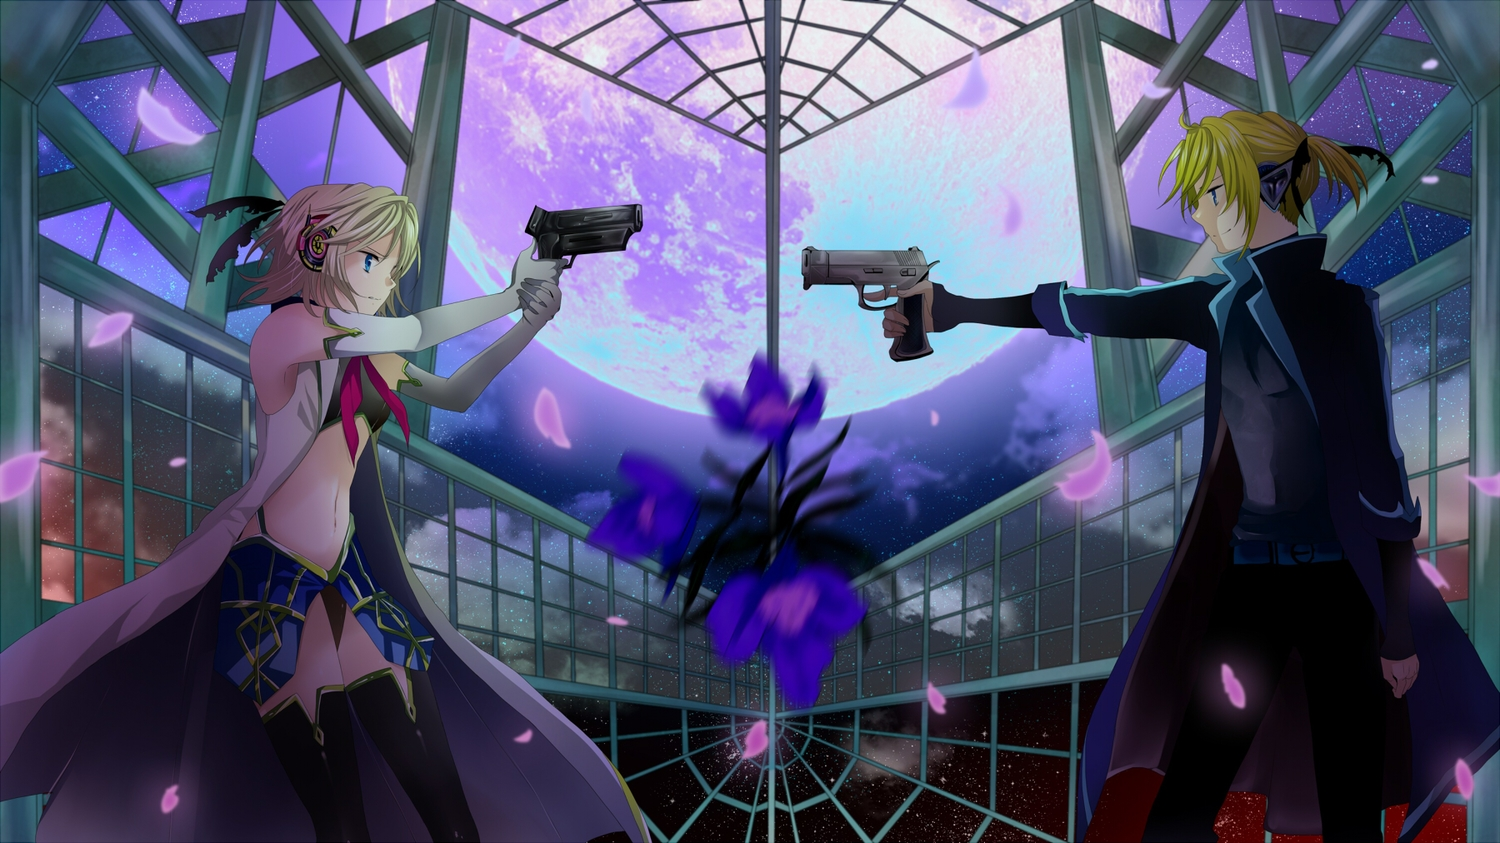 blonde_hair blue_eyes elbow_gloves flowers gloves gun headphones kagamine_len kagamine_rin male mariwai_(marireroy) moon navel panties petals ponytail short_hair stars thighhighs underwear vocaloid weapon